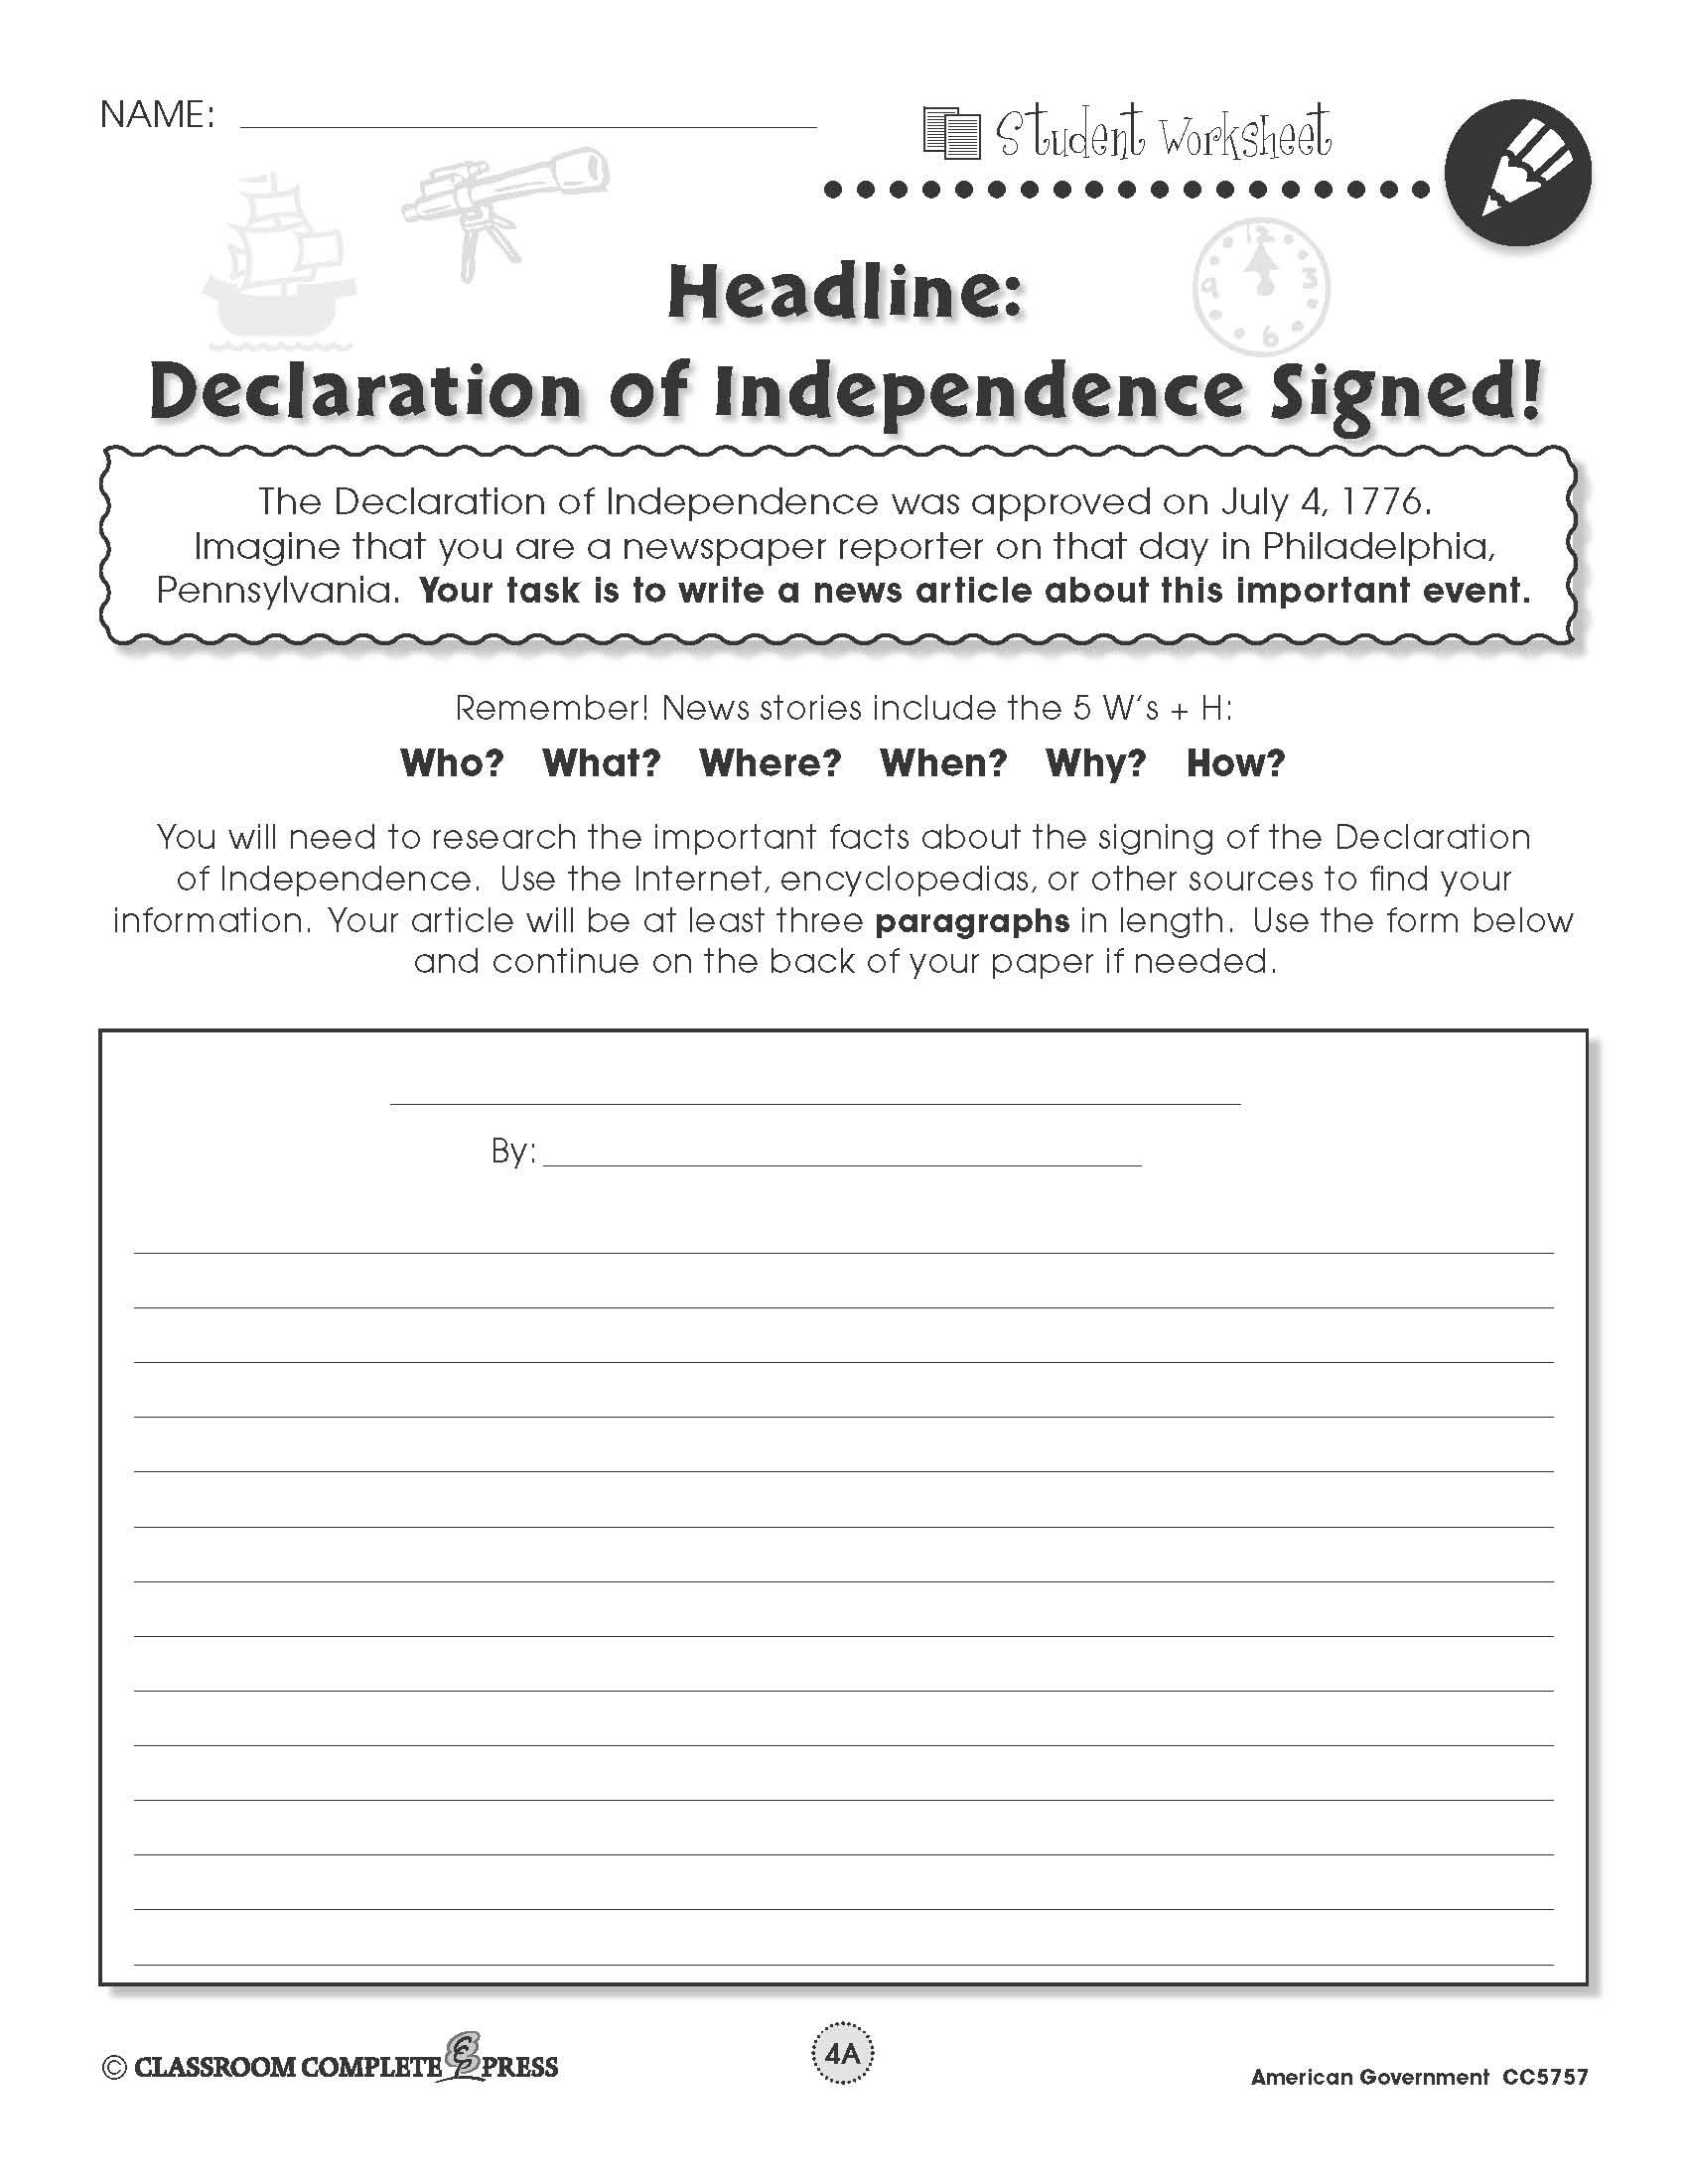 worksheet Declaration Of Independence Worksheets write a newspaper article about americas signing of the declaration independence in this free activity